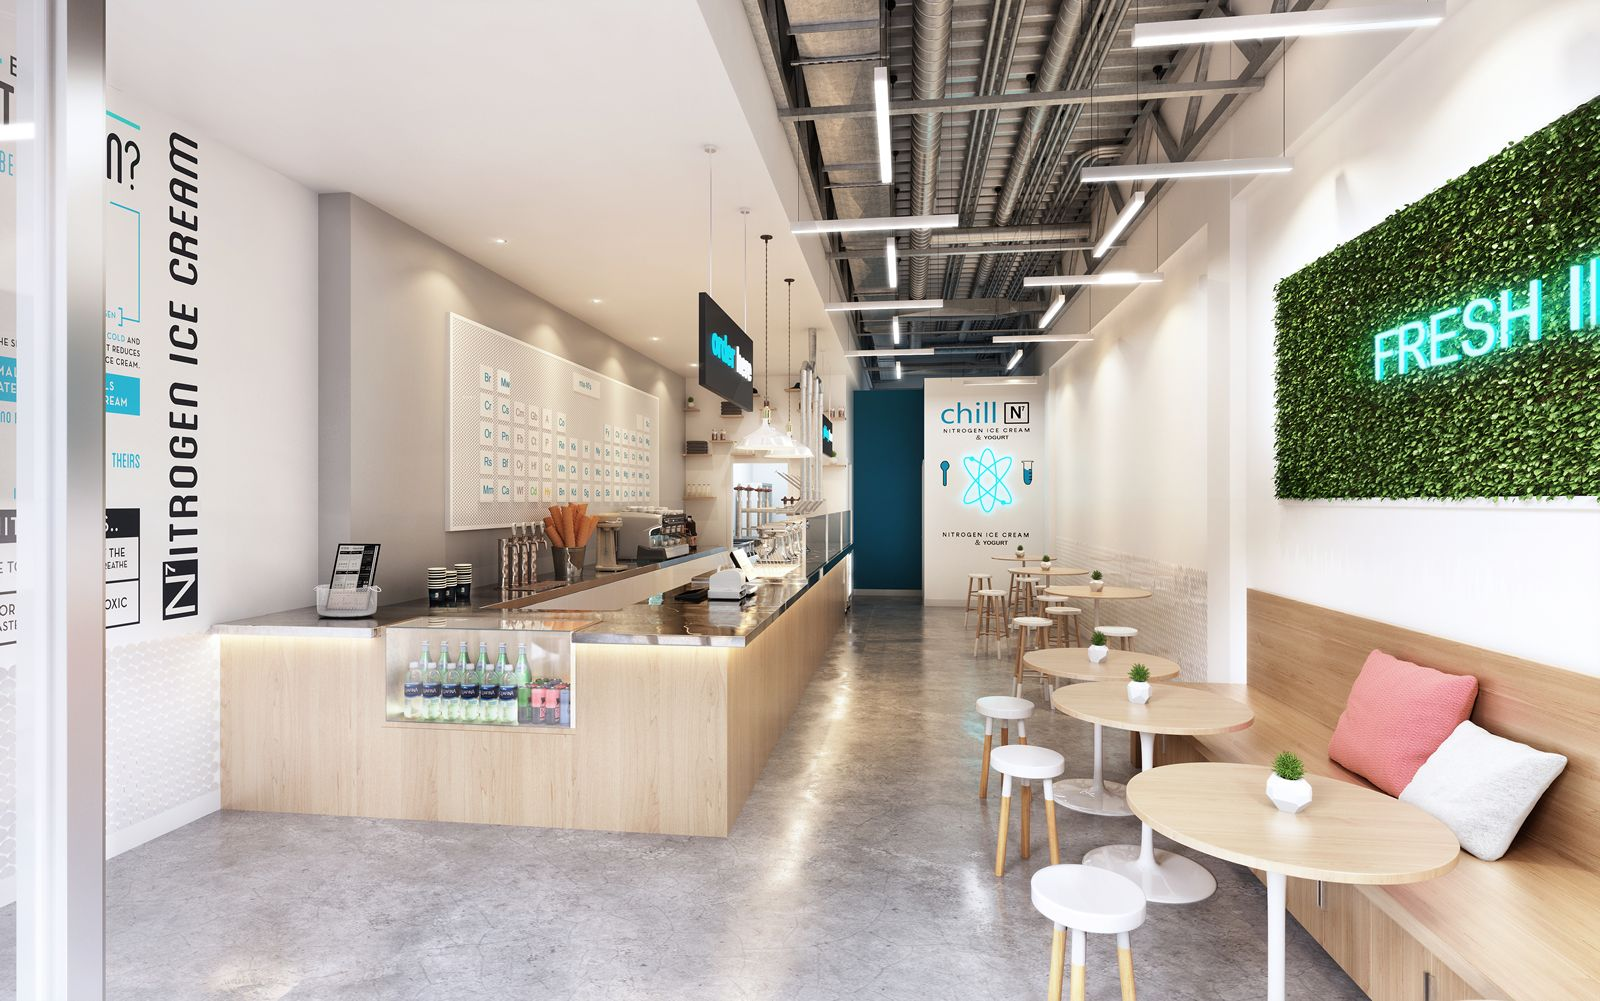 Chill-N Nitrogen Ice Cream Now Open in Coconut Grove